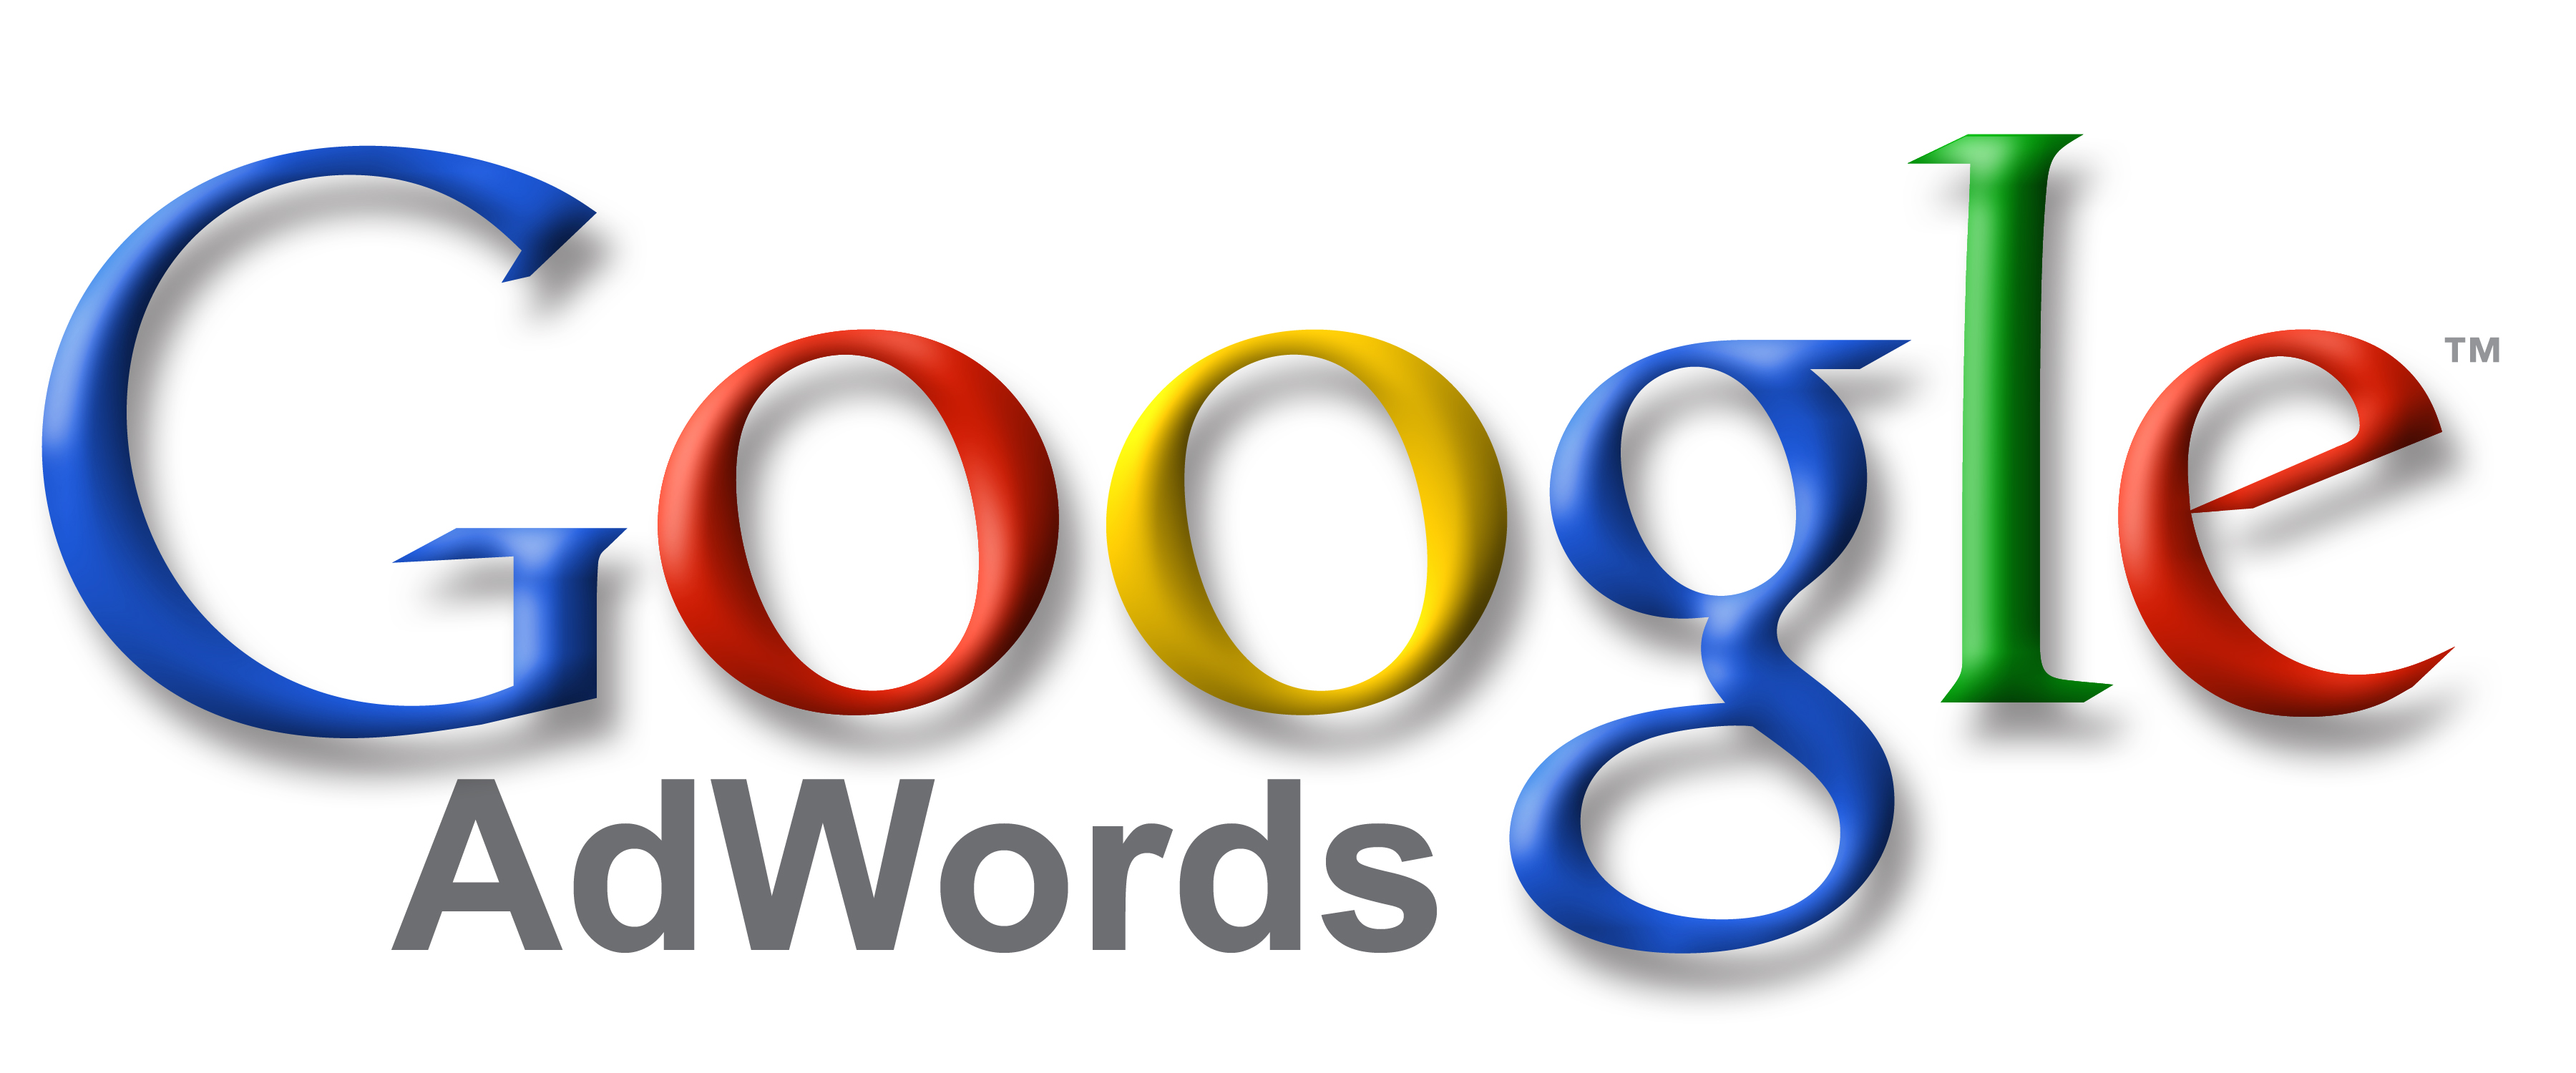 give you trick for free unlimited google adwords vocher